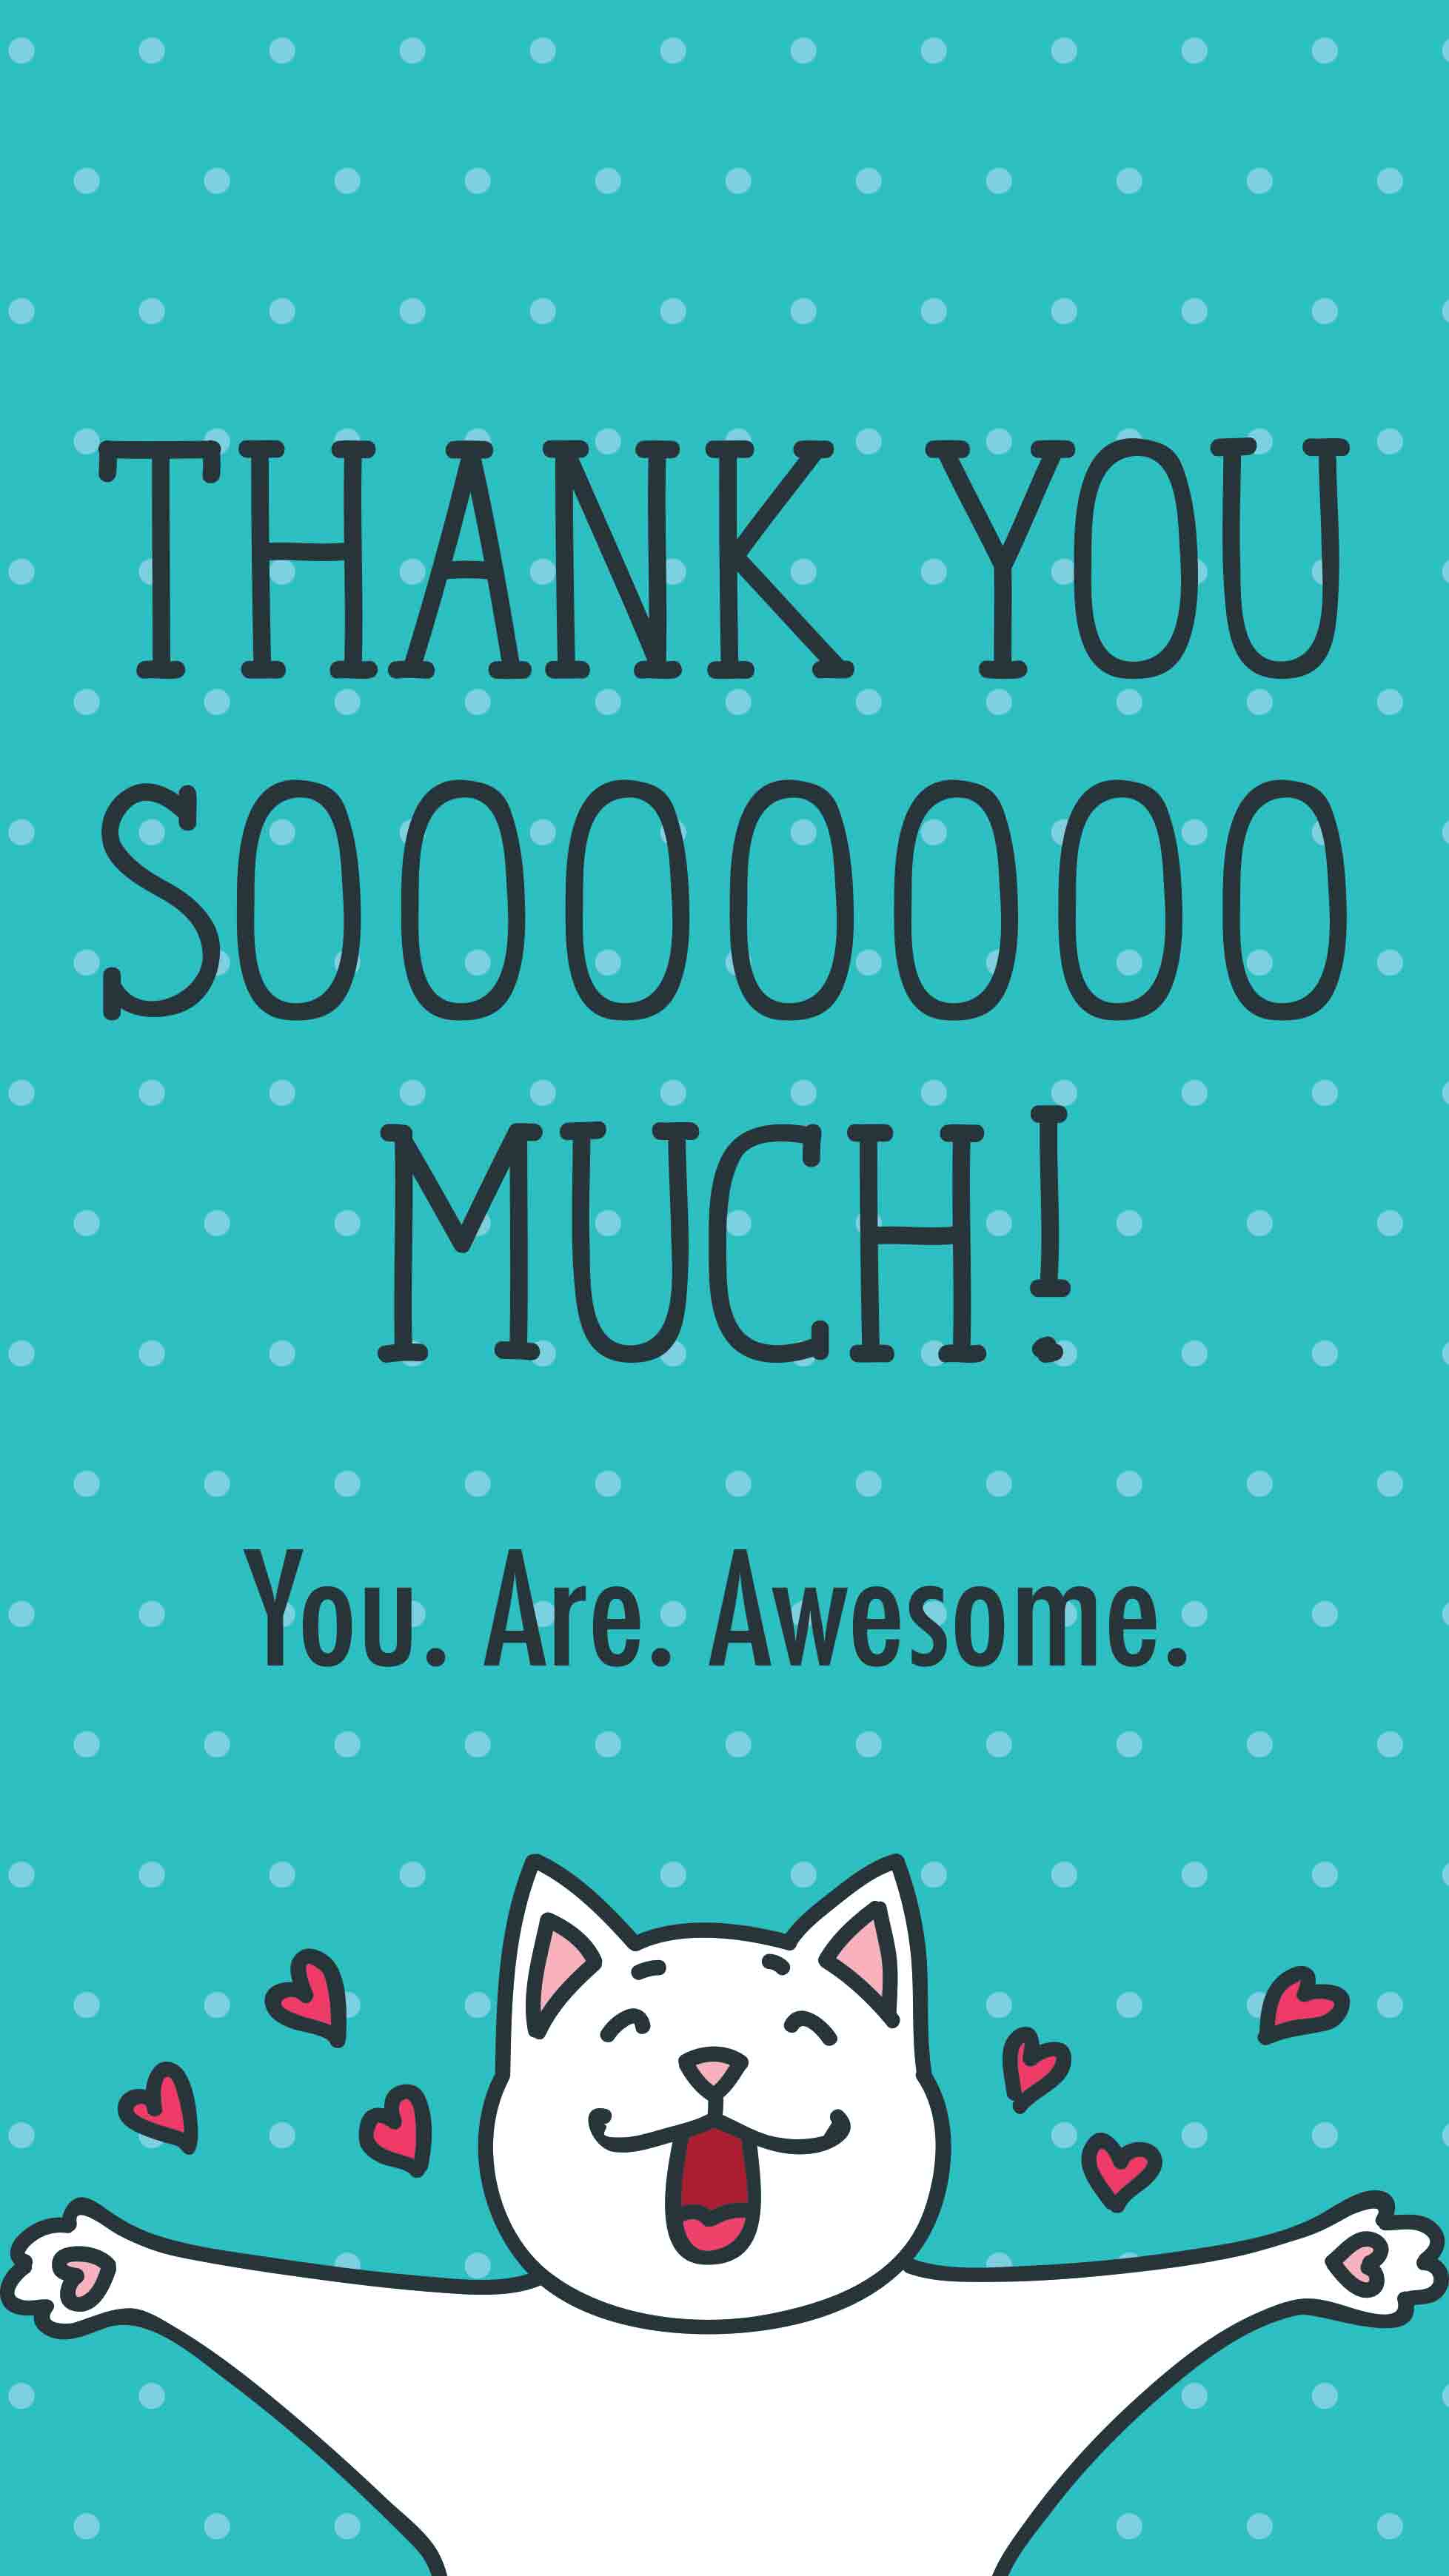 Your are Awesome